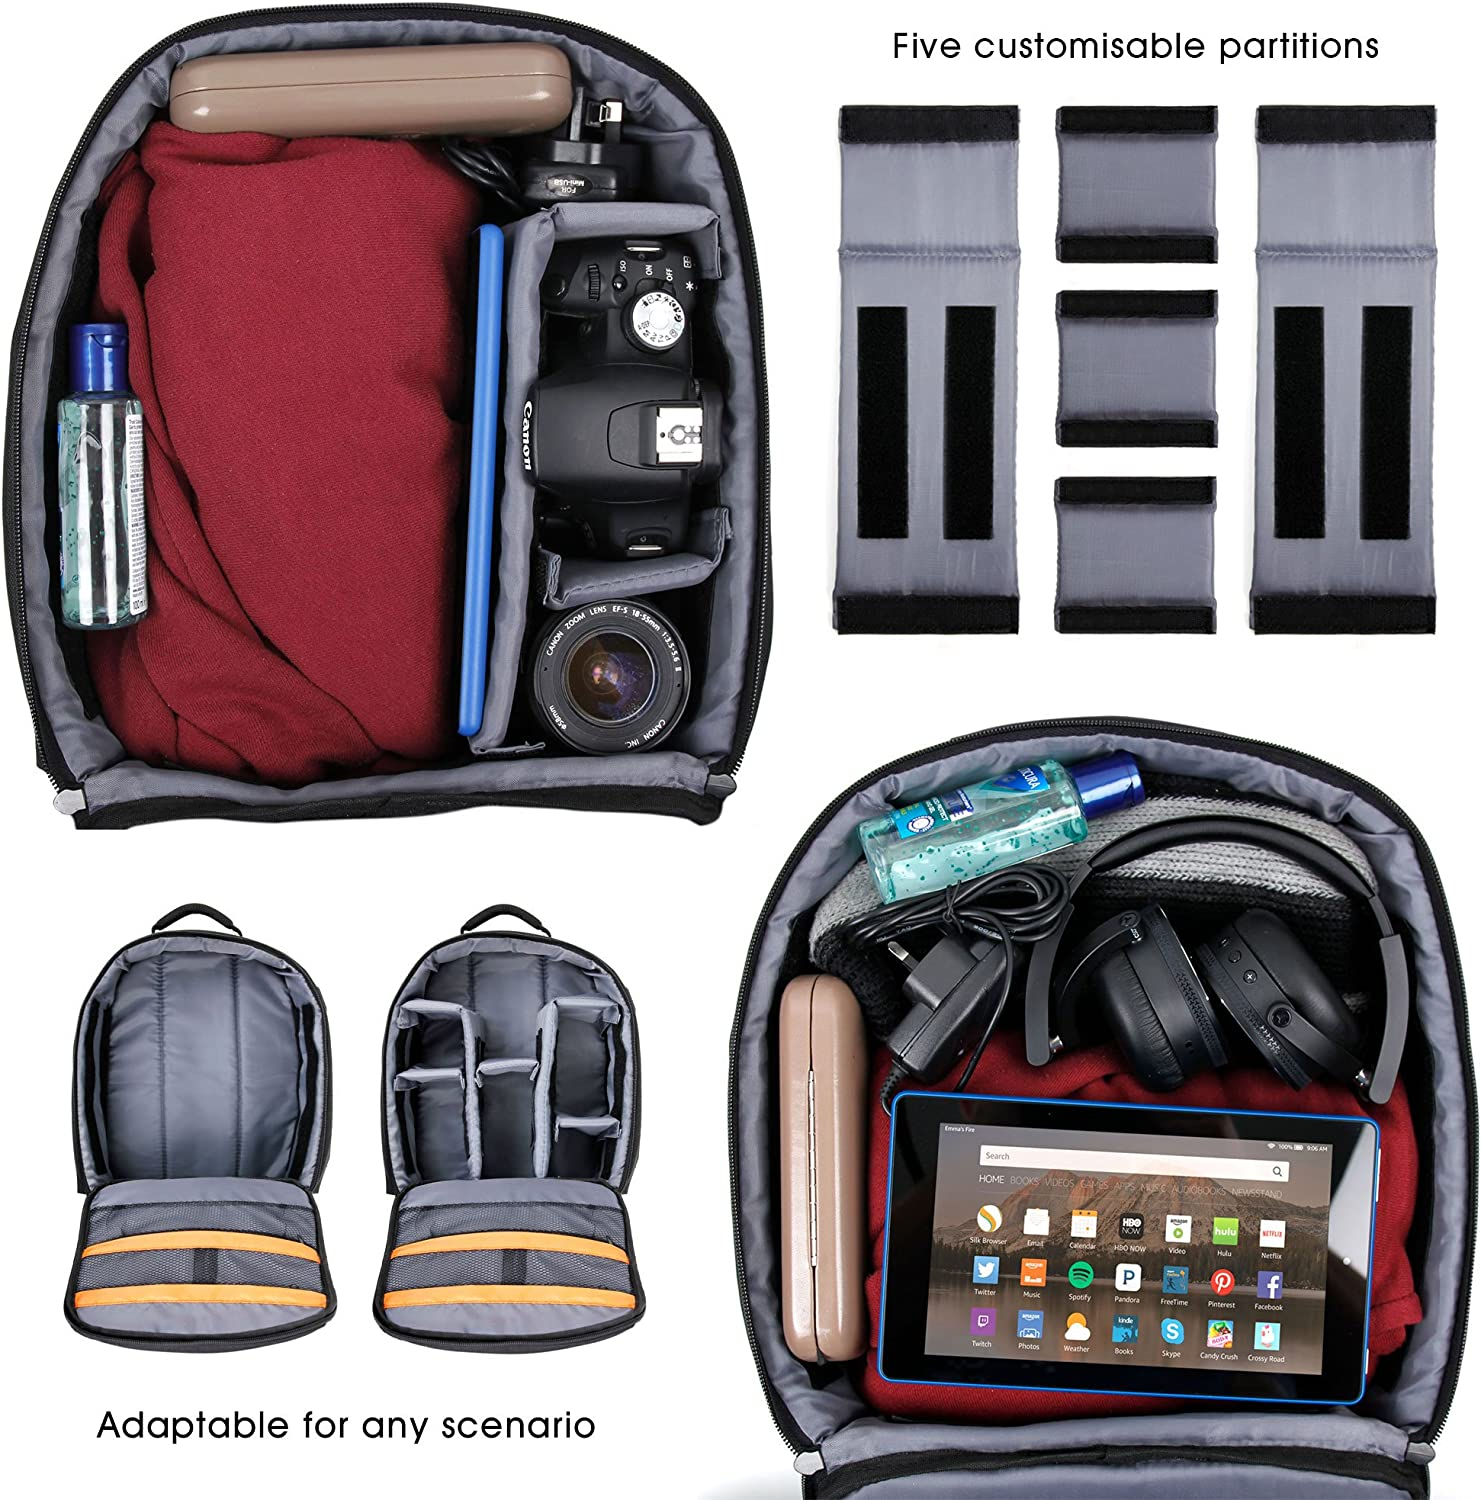 DURAGADGET Black Backpack w//Customisable Interior /& Raincover XS9 XS80 /& XS100 Extreme Edition XS20 XS7 Compatible with Toshiba Camileo X-Sports//Veho MUVI//Polaroid Cube C3//HD